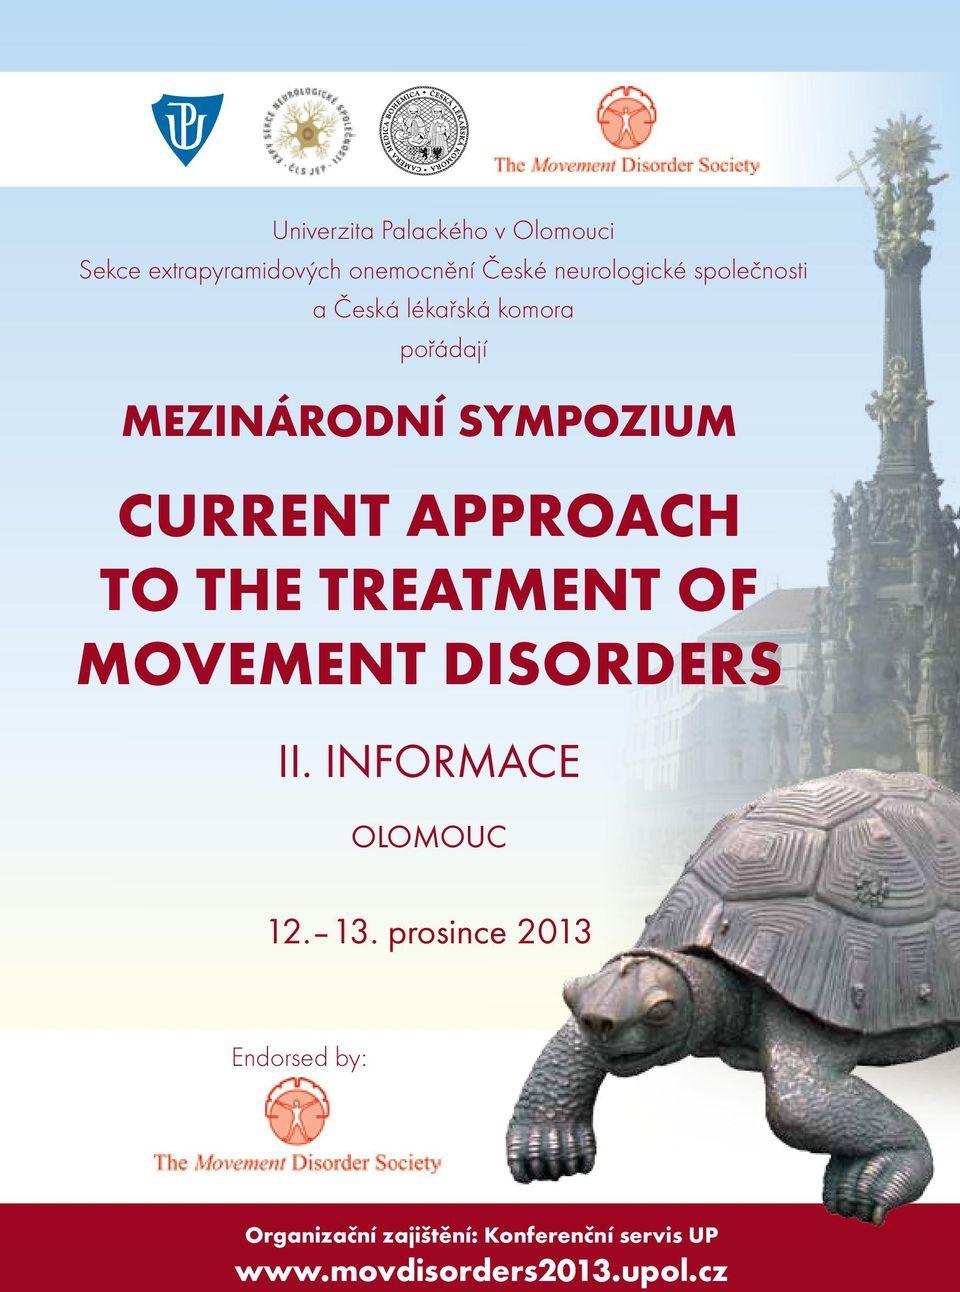 SYMPOZIUM CURRENT APPROACH TO THE TREATMENT OF MOVEMENT DISORDERS II.